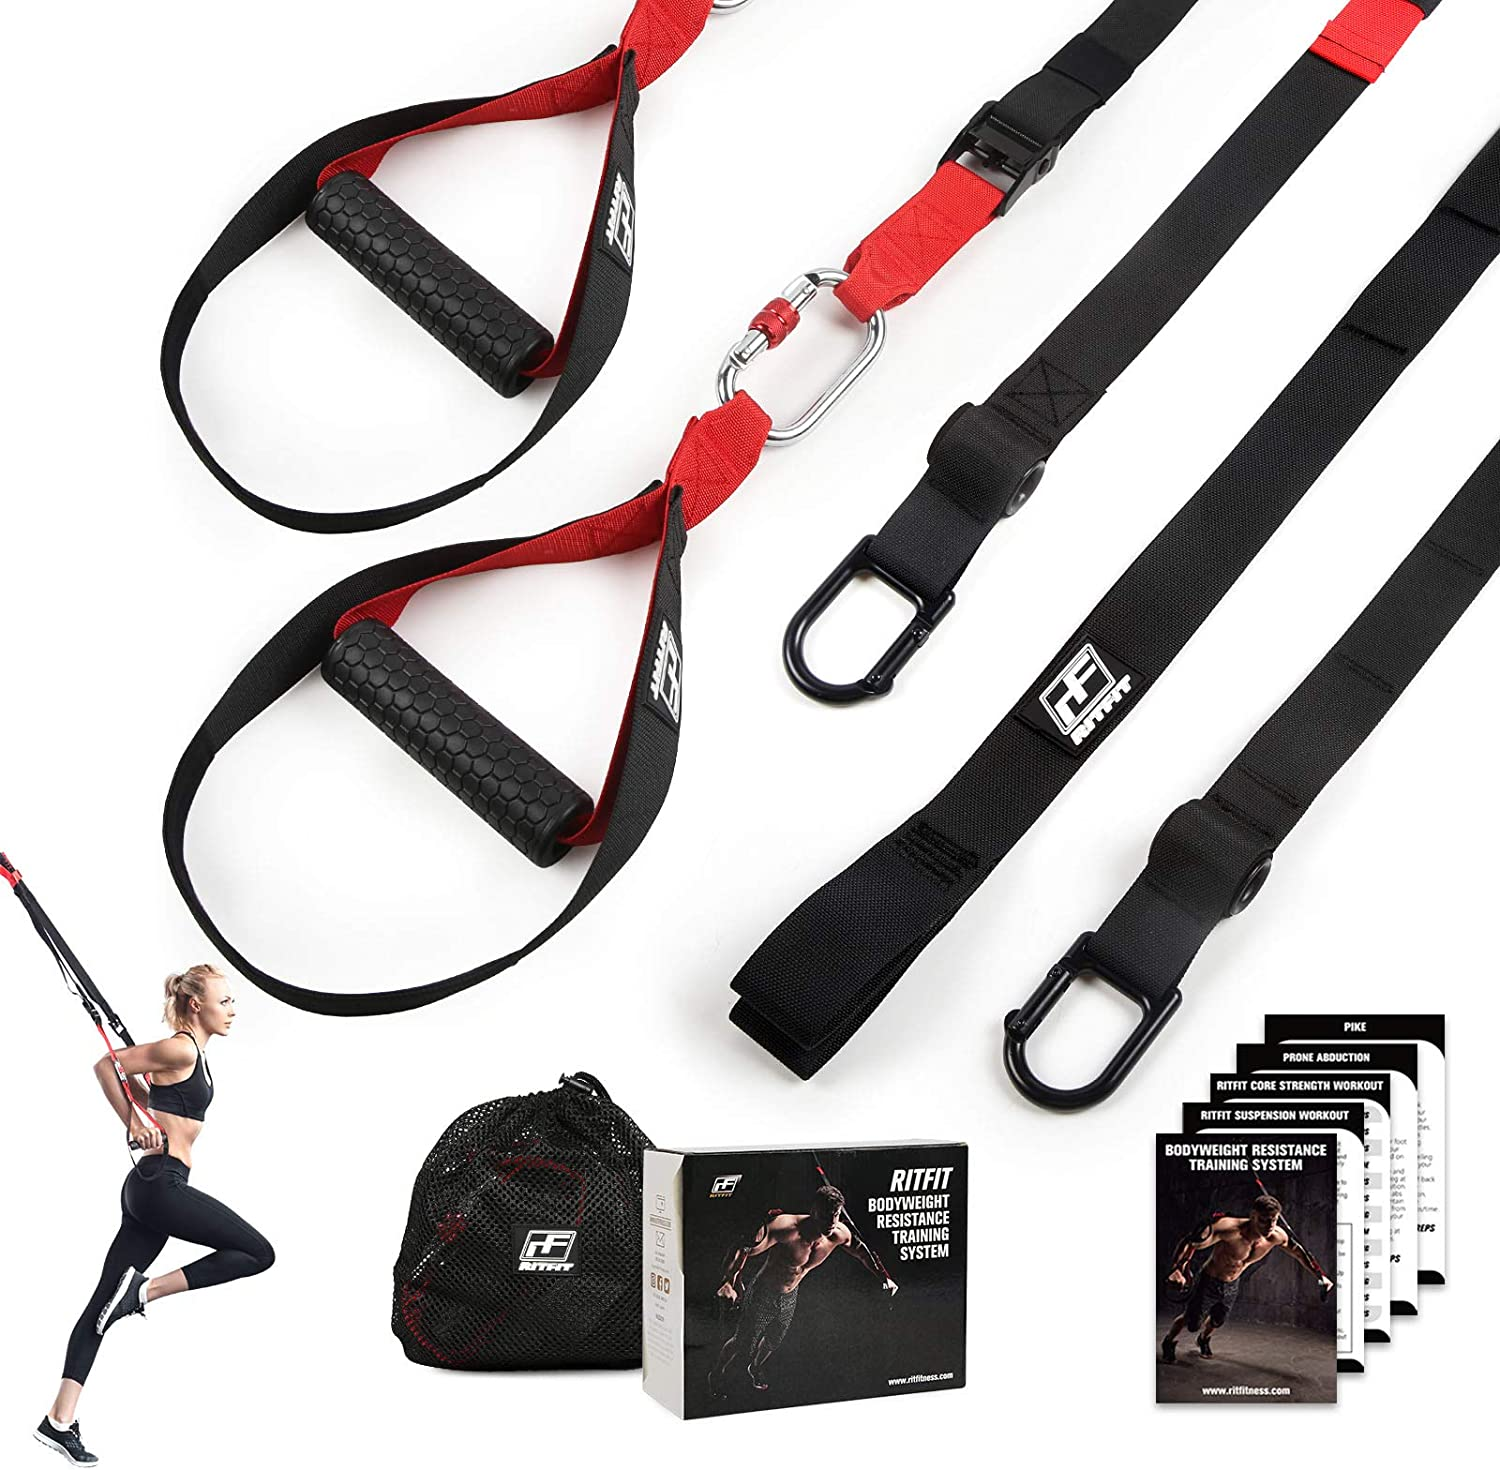 RitFit Bodyweight Resistance Training Kit with Integrated Door Anchors and Extension Strap, Fitness Straps for Total Body Workouts, Home & Travel, Workout Guide Included